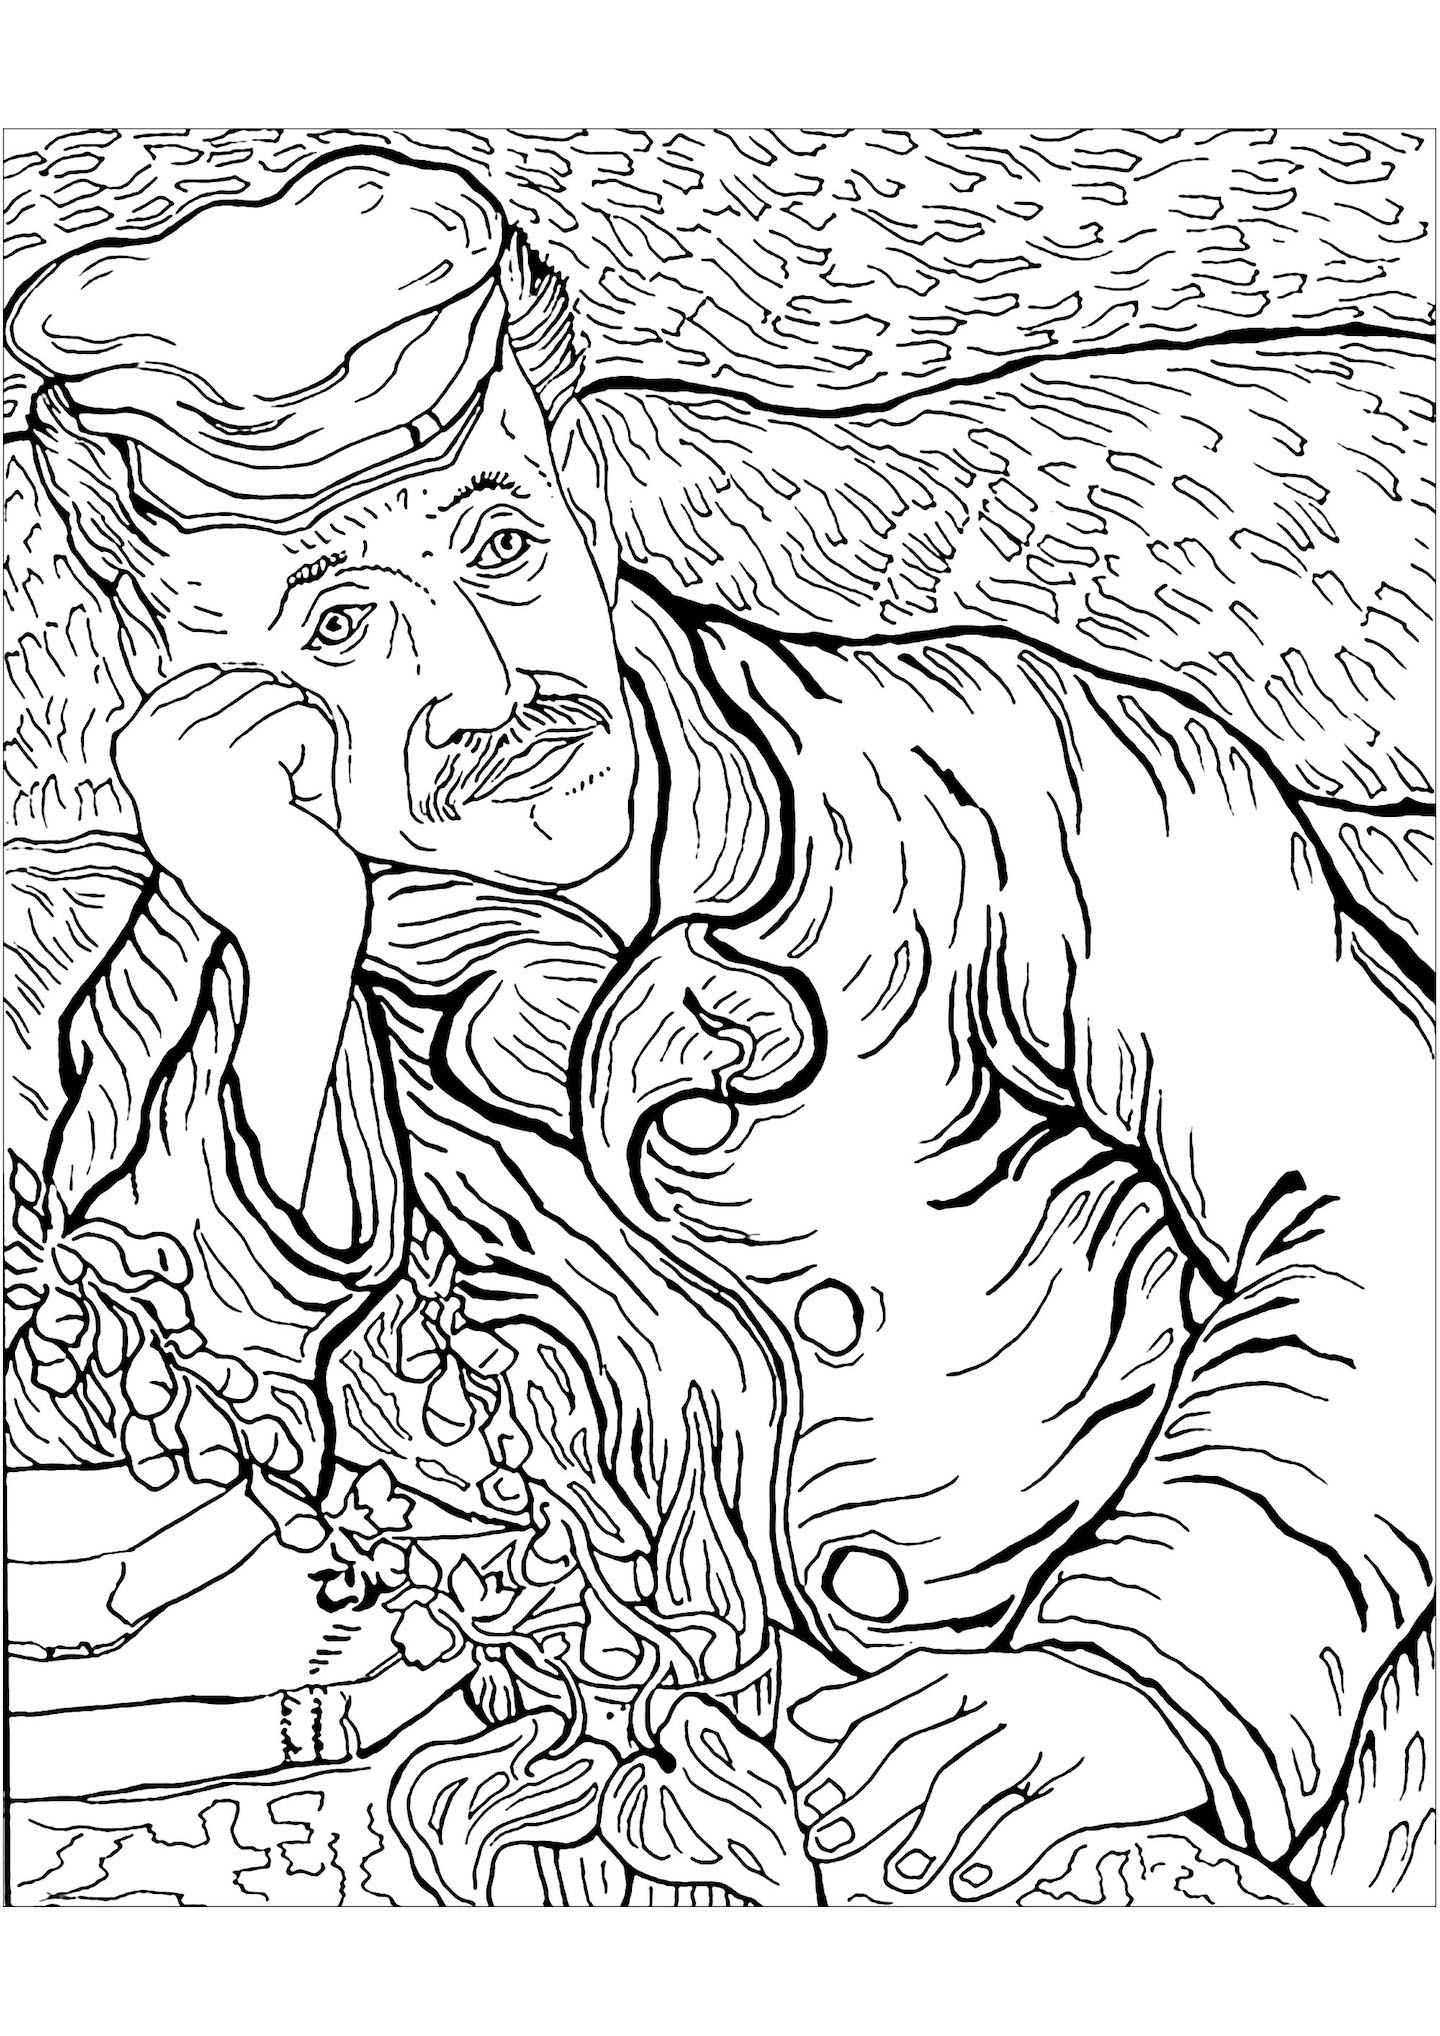 masterpiece coloring pages creative haven mosaic masterpieces coloring book pattern pages masterpiece coloring